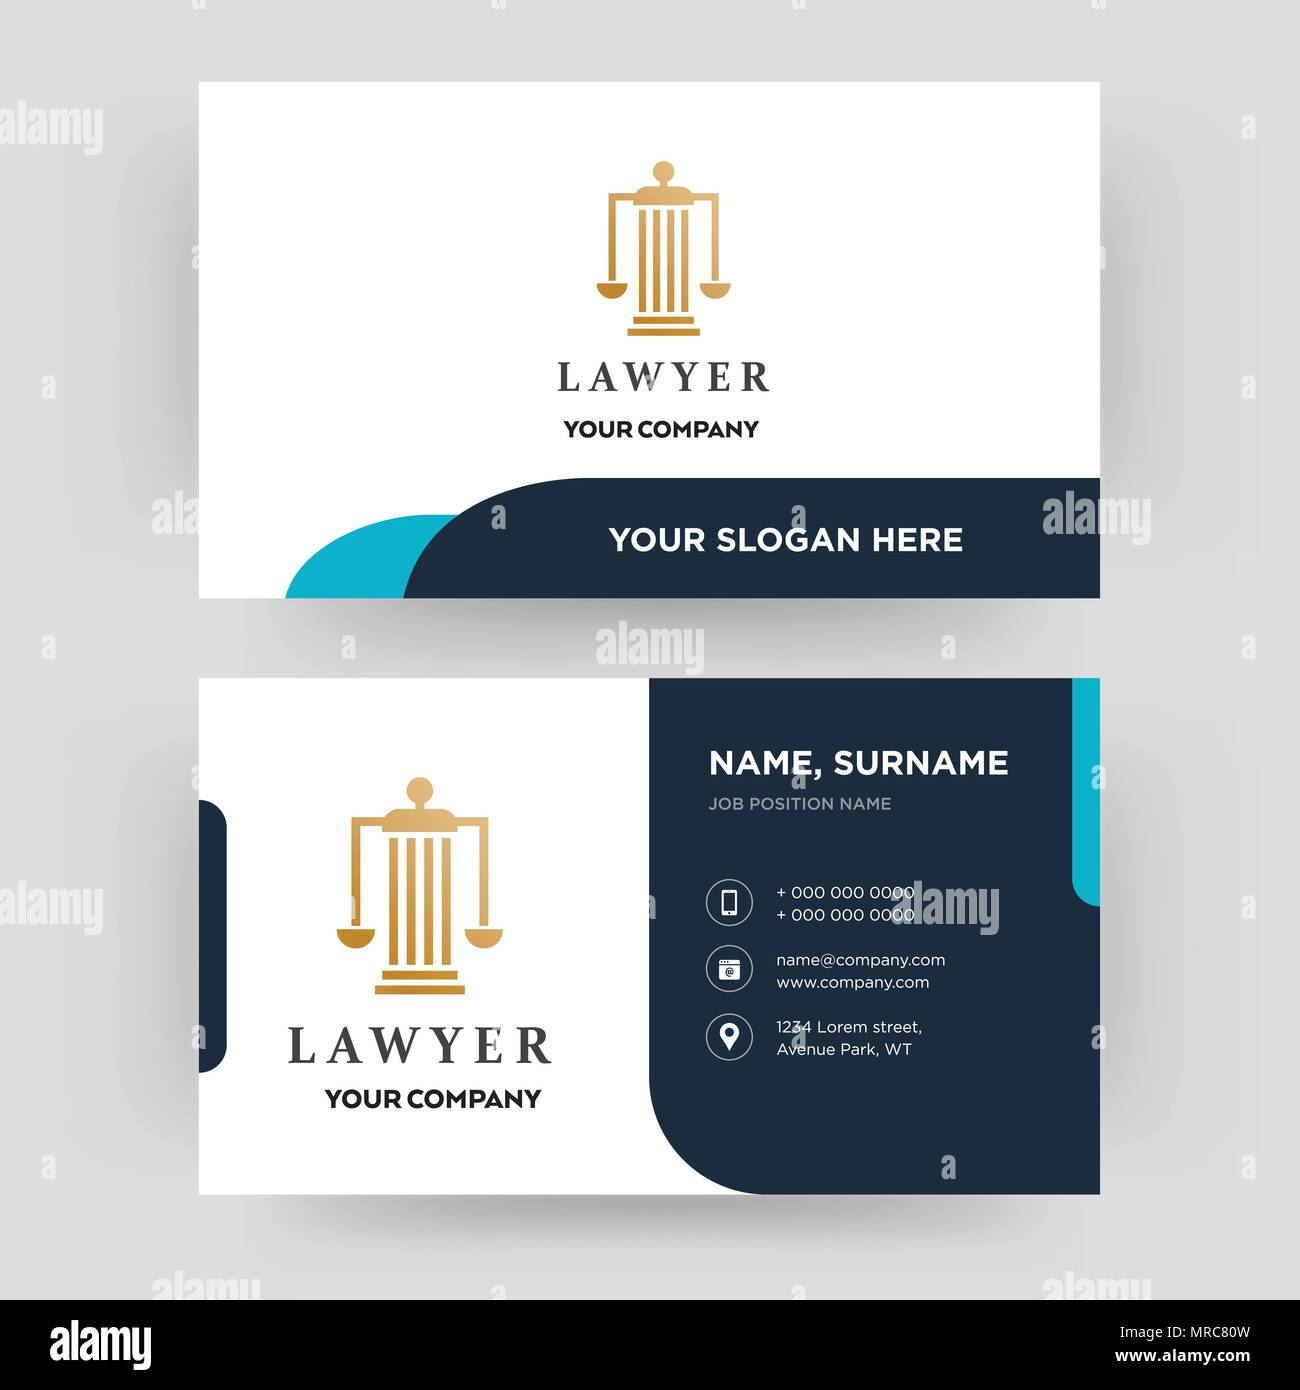 Lawyer business card design template visiting for your company lawyer business card design template visiting for your company modern creative and clean identity card vector cheaphphosting Gallery